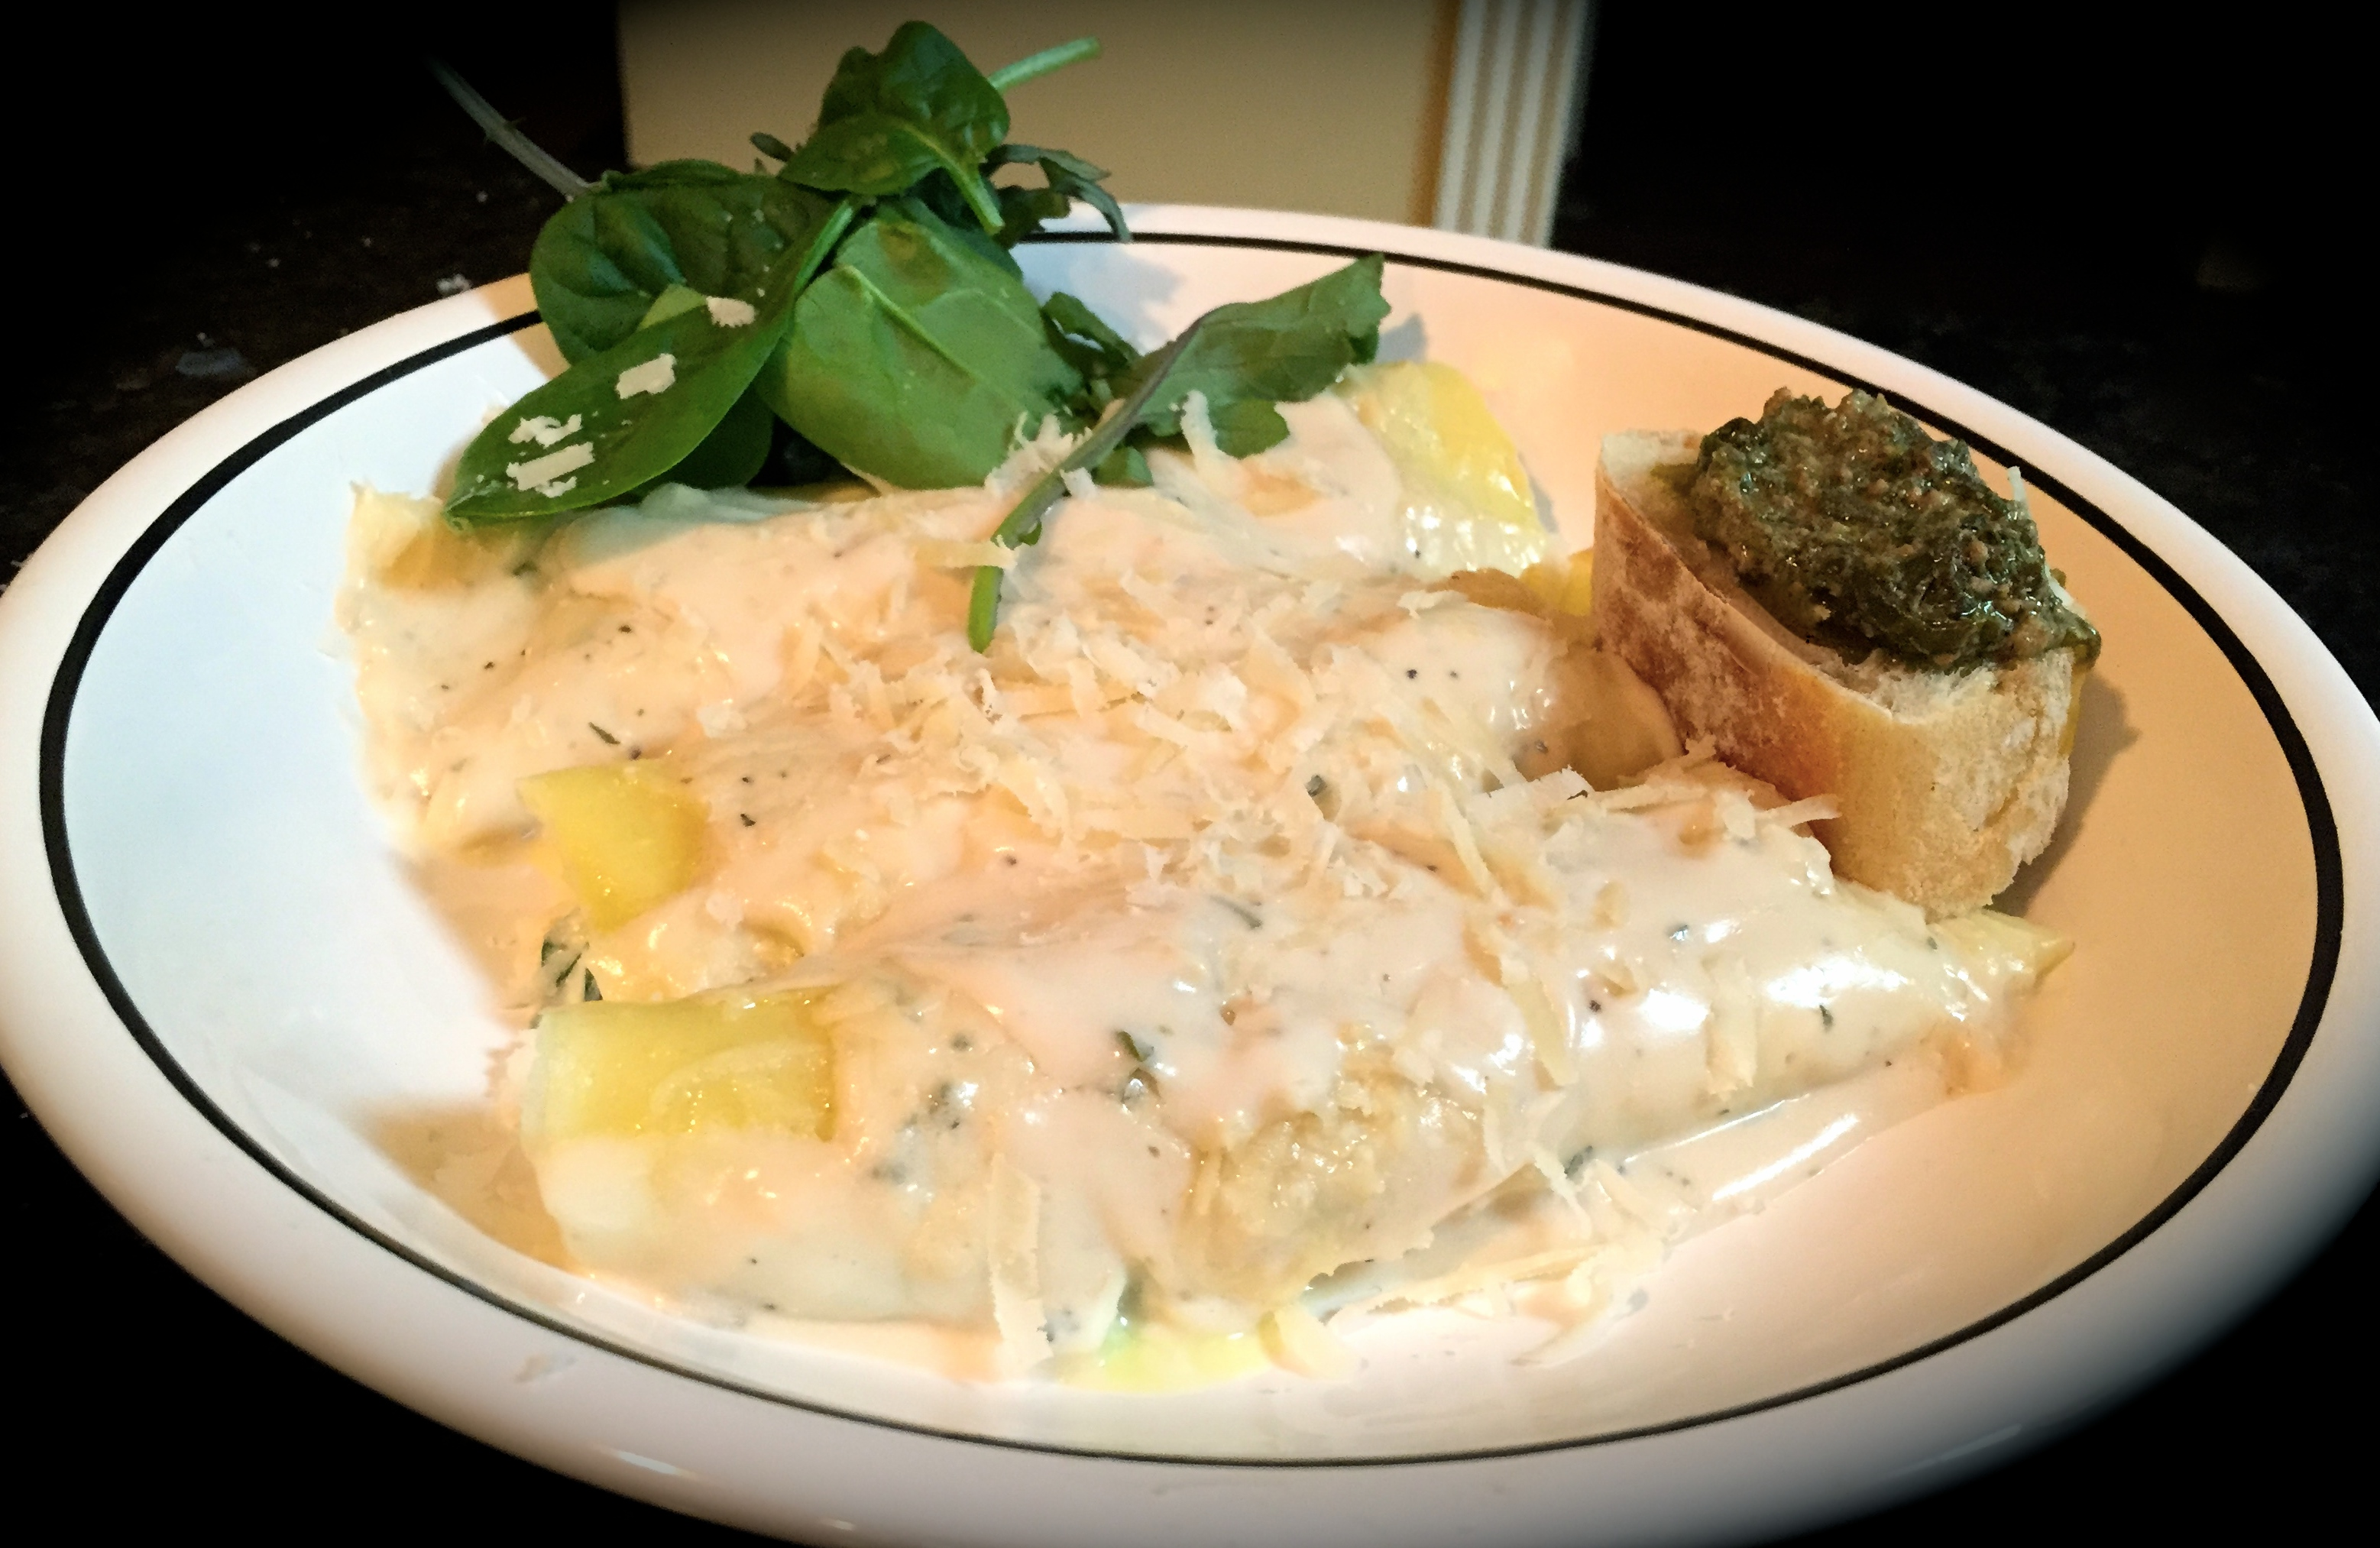 Spinach and cheese stuffed manicotti in alfredo sauce served with spinach salad and basil pesto crostino